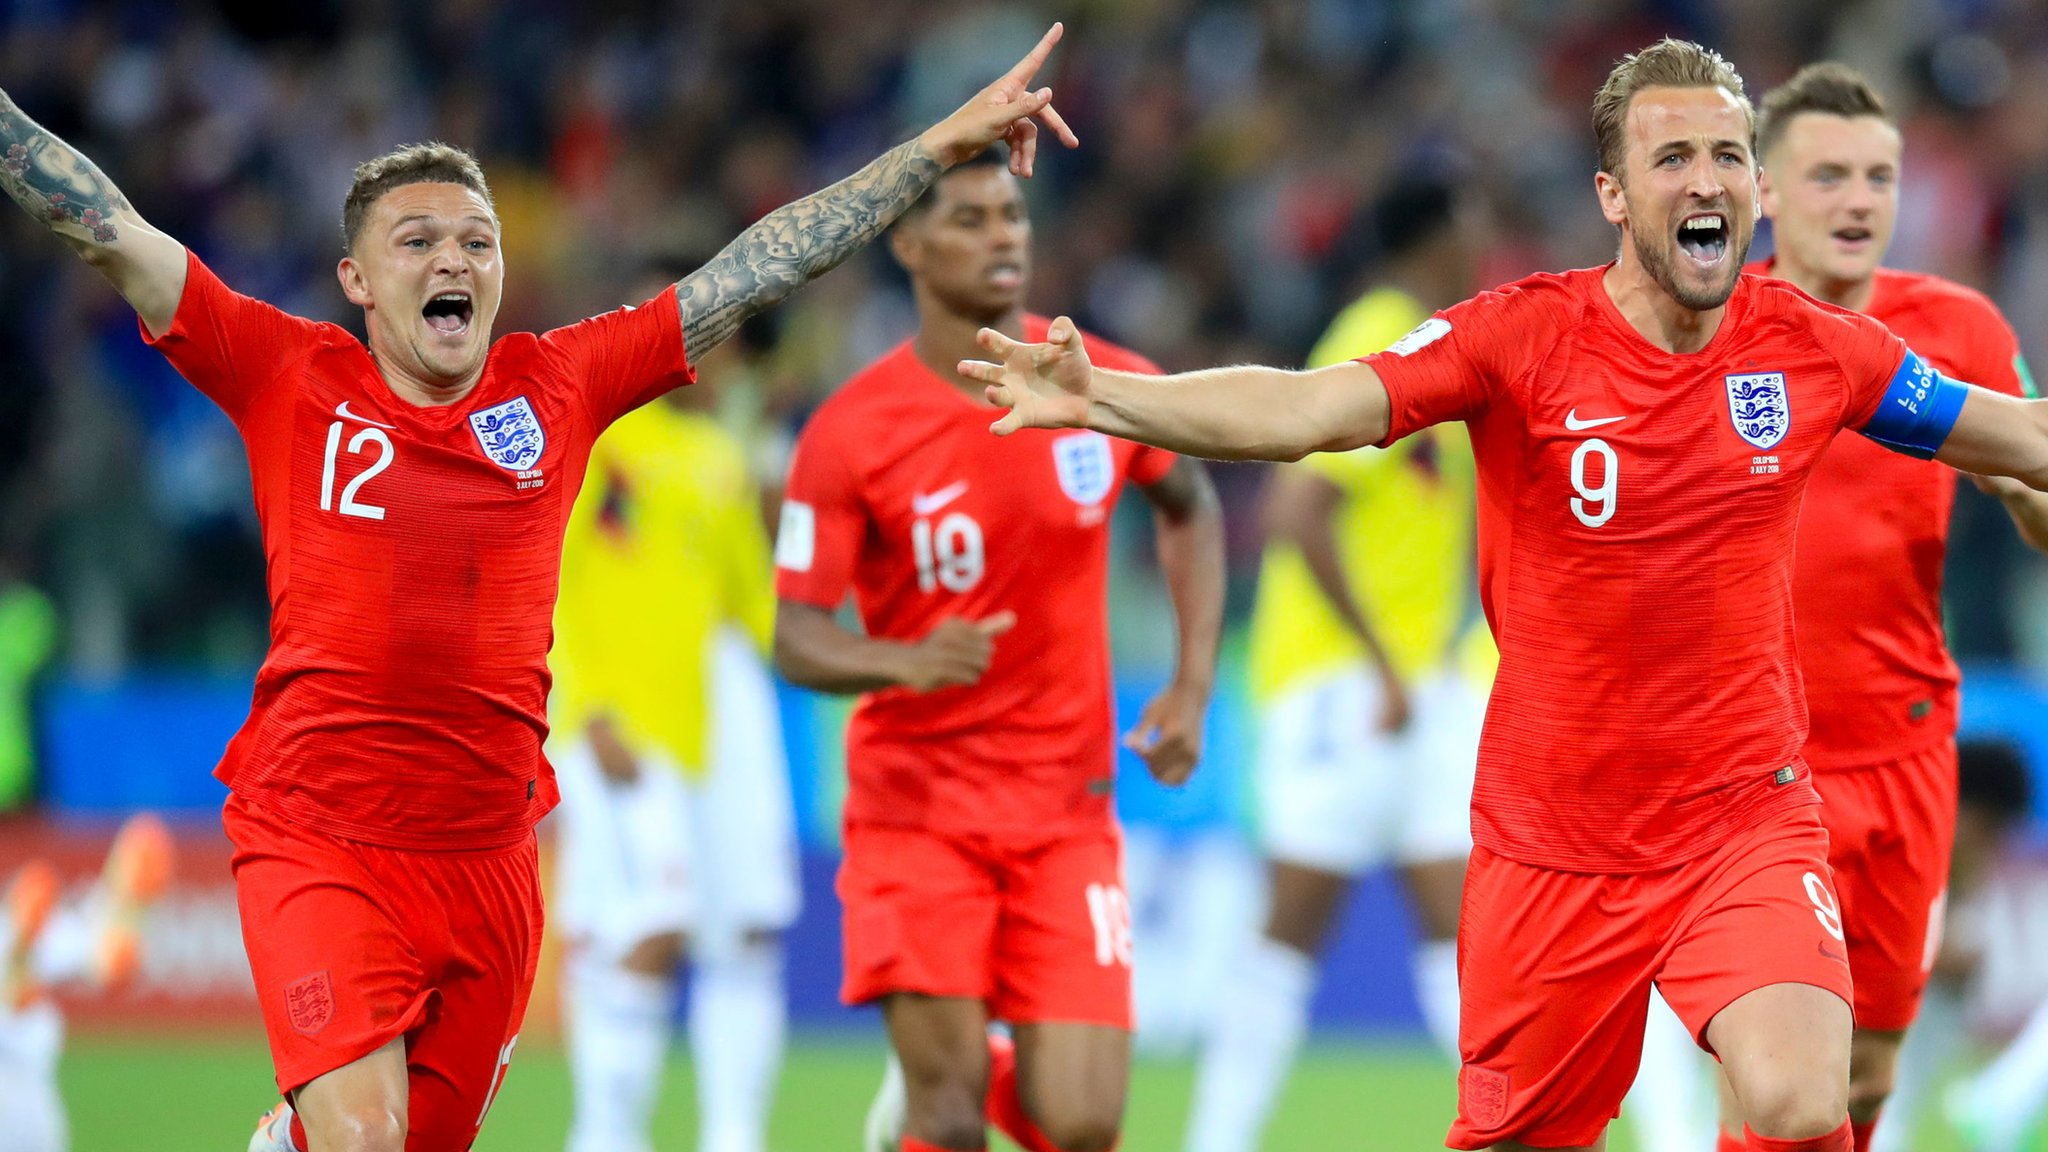 England rise to sixth in Fifa rankings after World Cup run